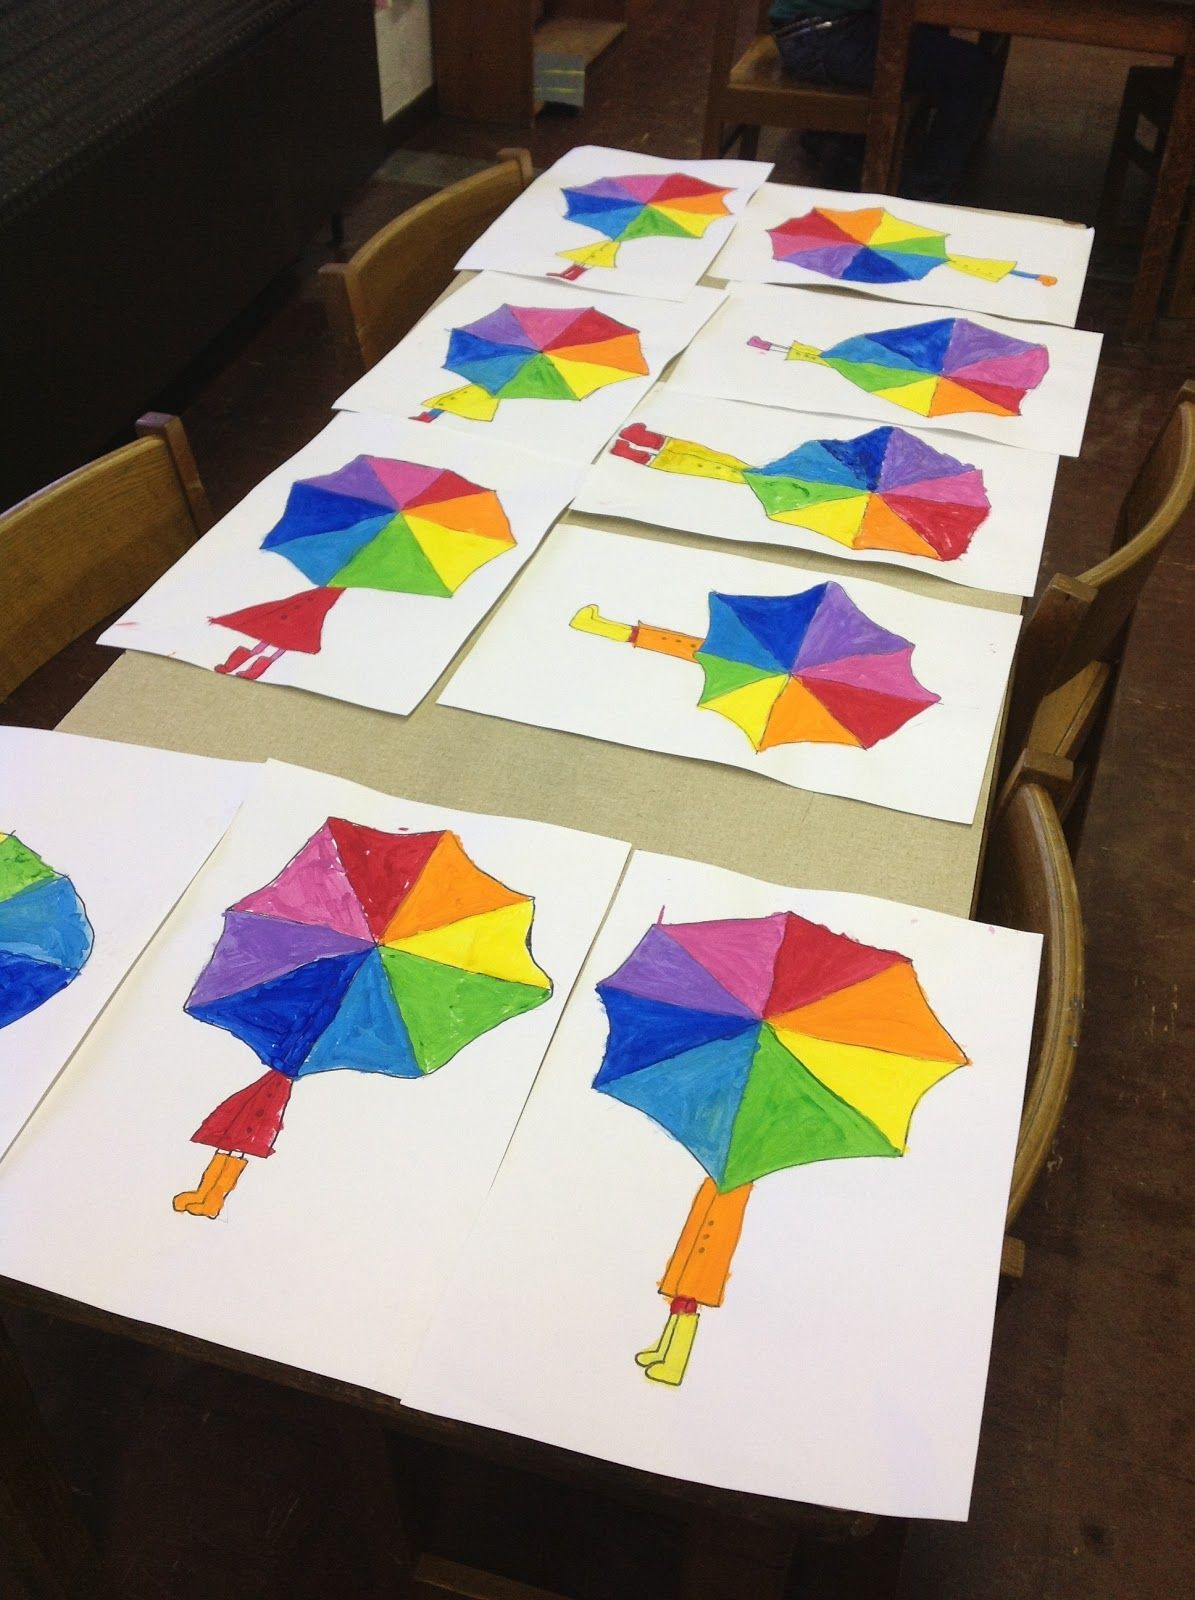 Color wheel art projects for kids - The Color Wheel In The Photo Is Not Correct Needs To Be Correct To Make It A Good Project Color It Like You Mean It Color Wheel Umbrella